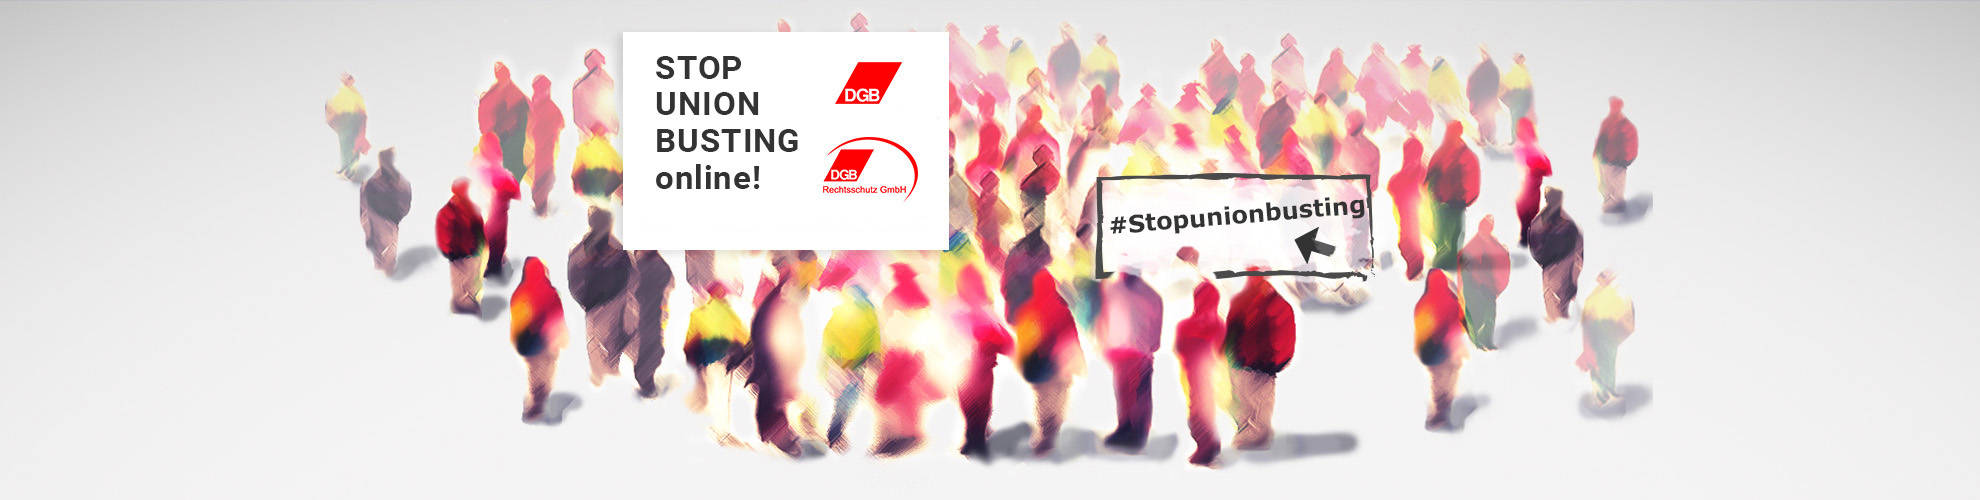 STOP UNION BUSTING online